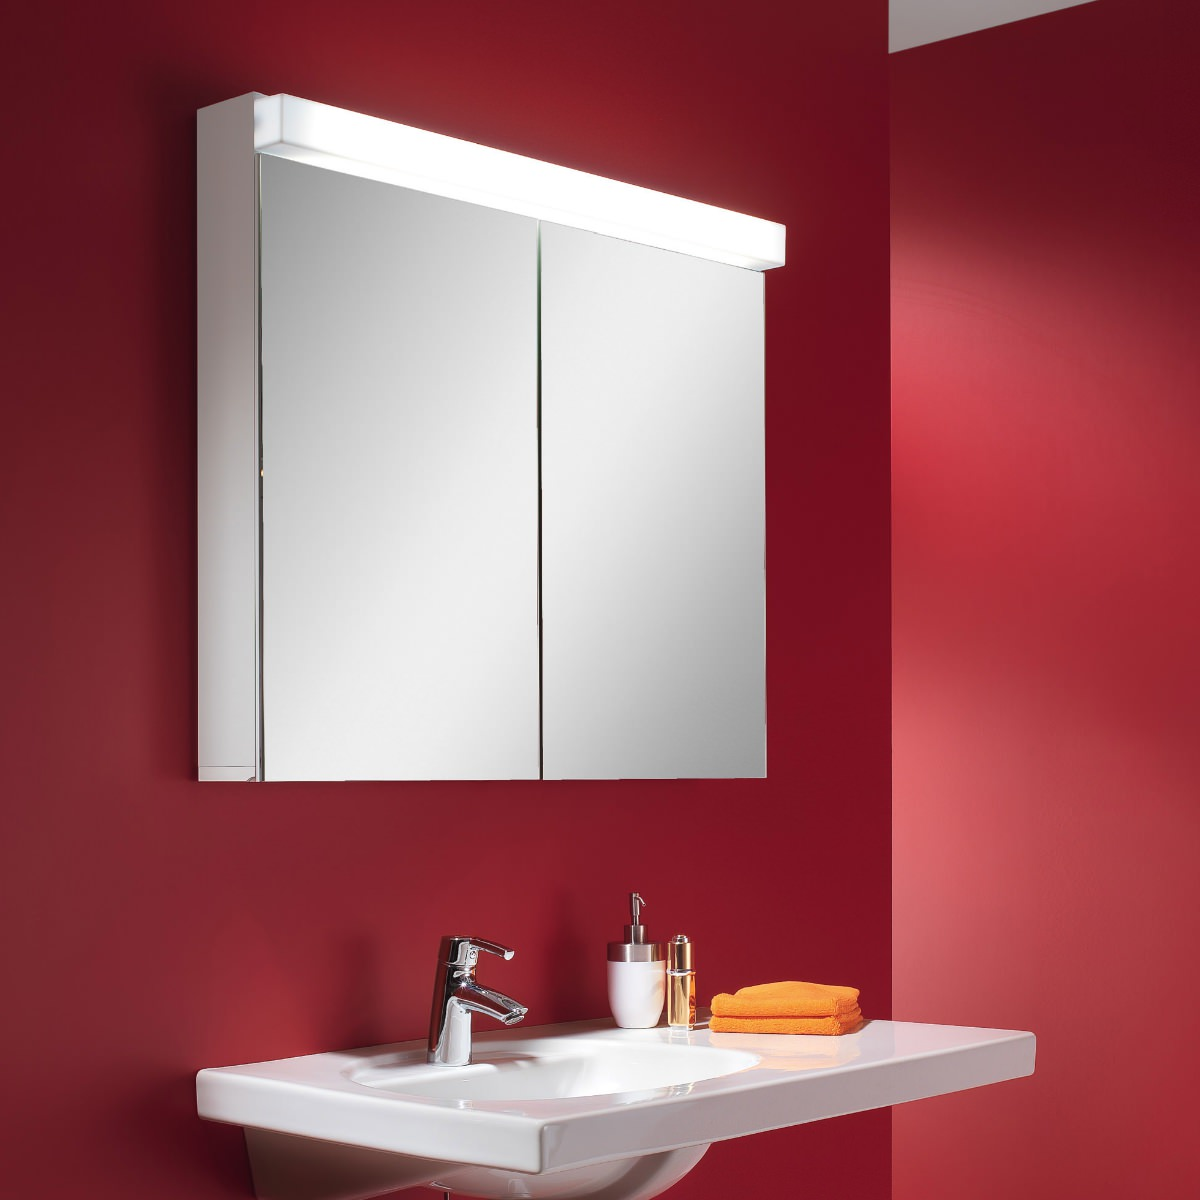 Schneider Lowline 90cm 2 Door Mirror Cabinet With Led Light